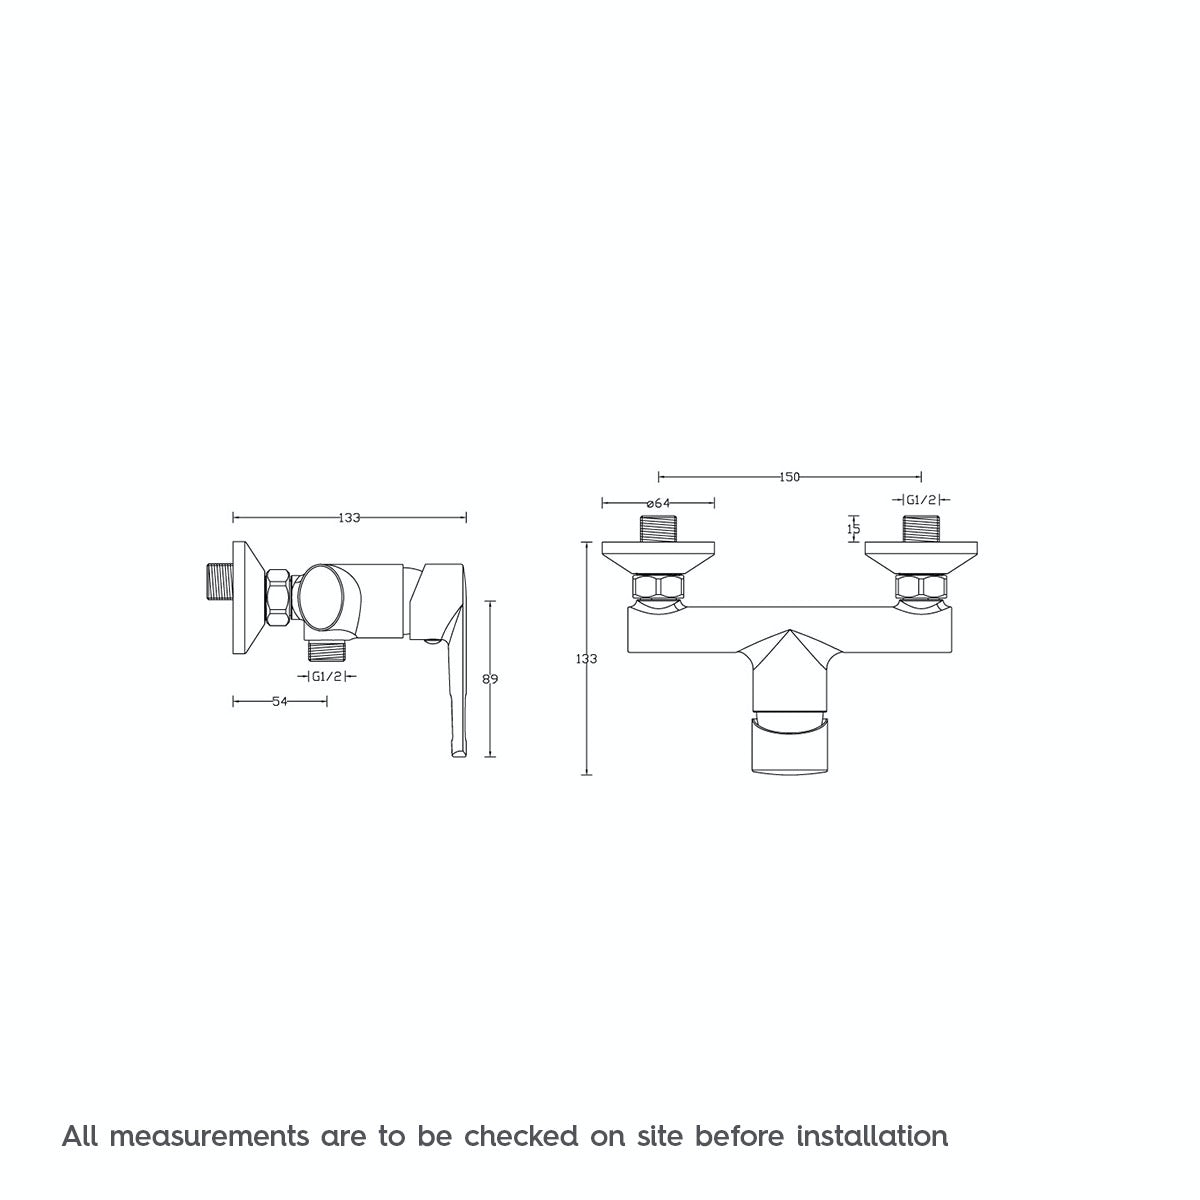 Dimensions for Langdale manual shower valve